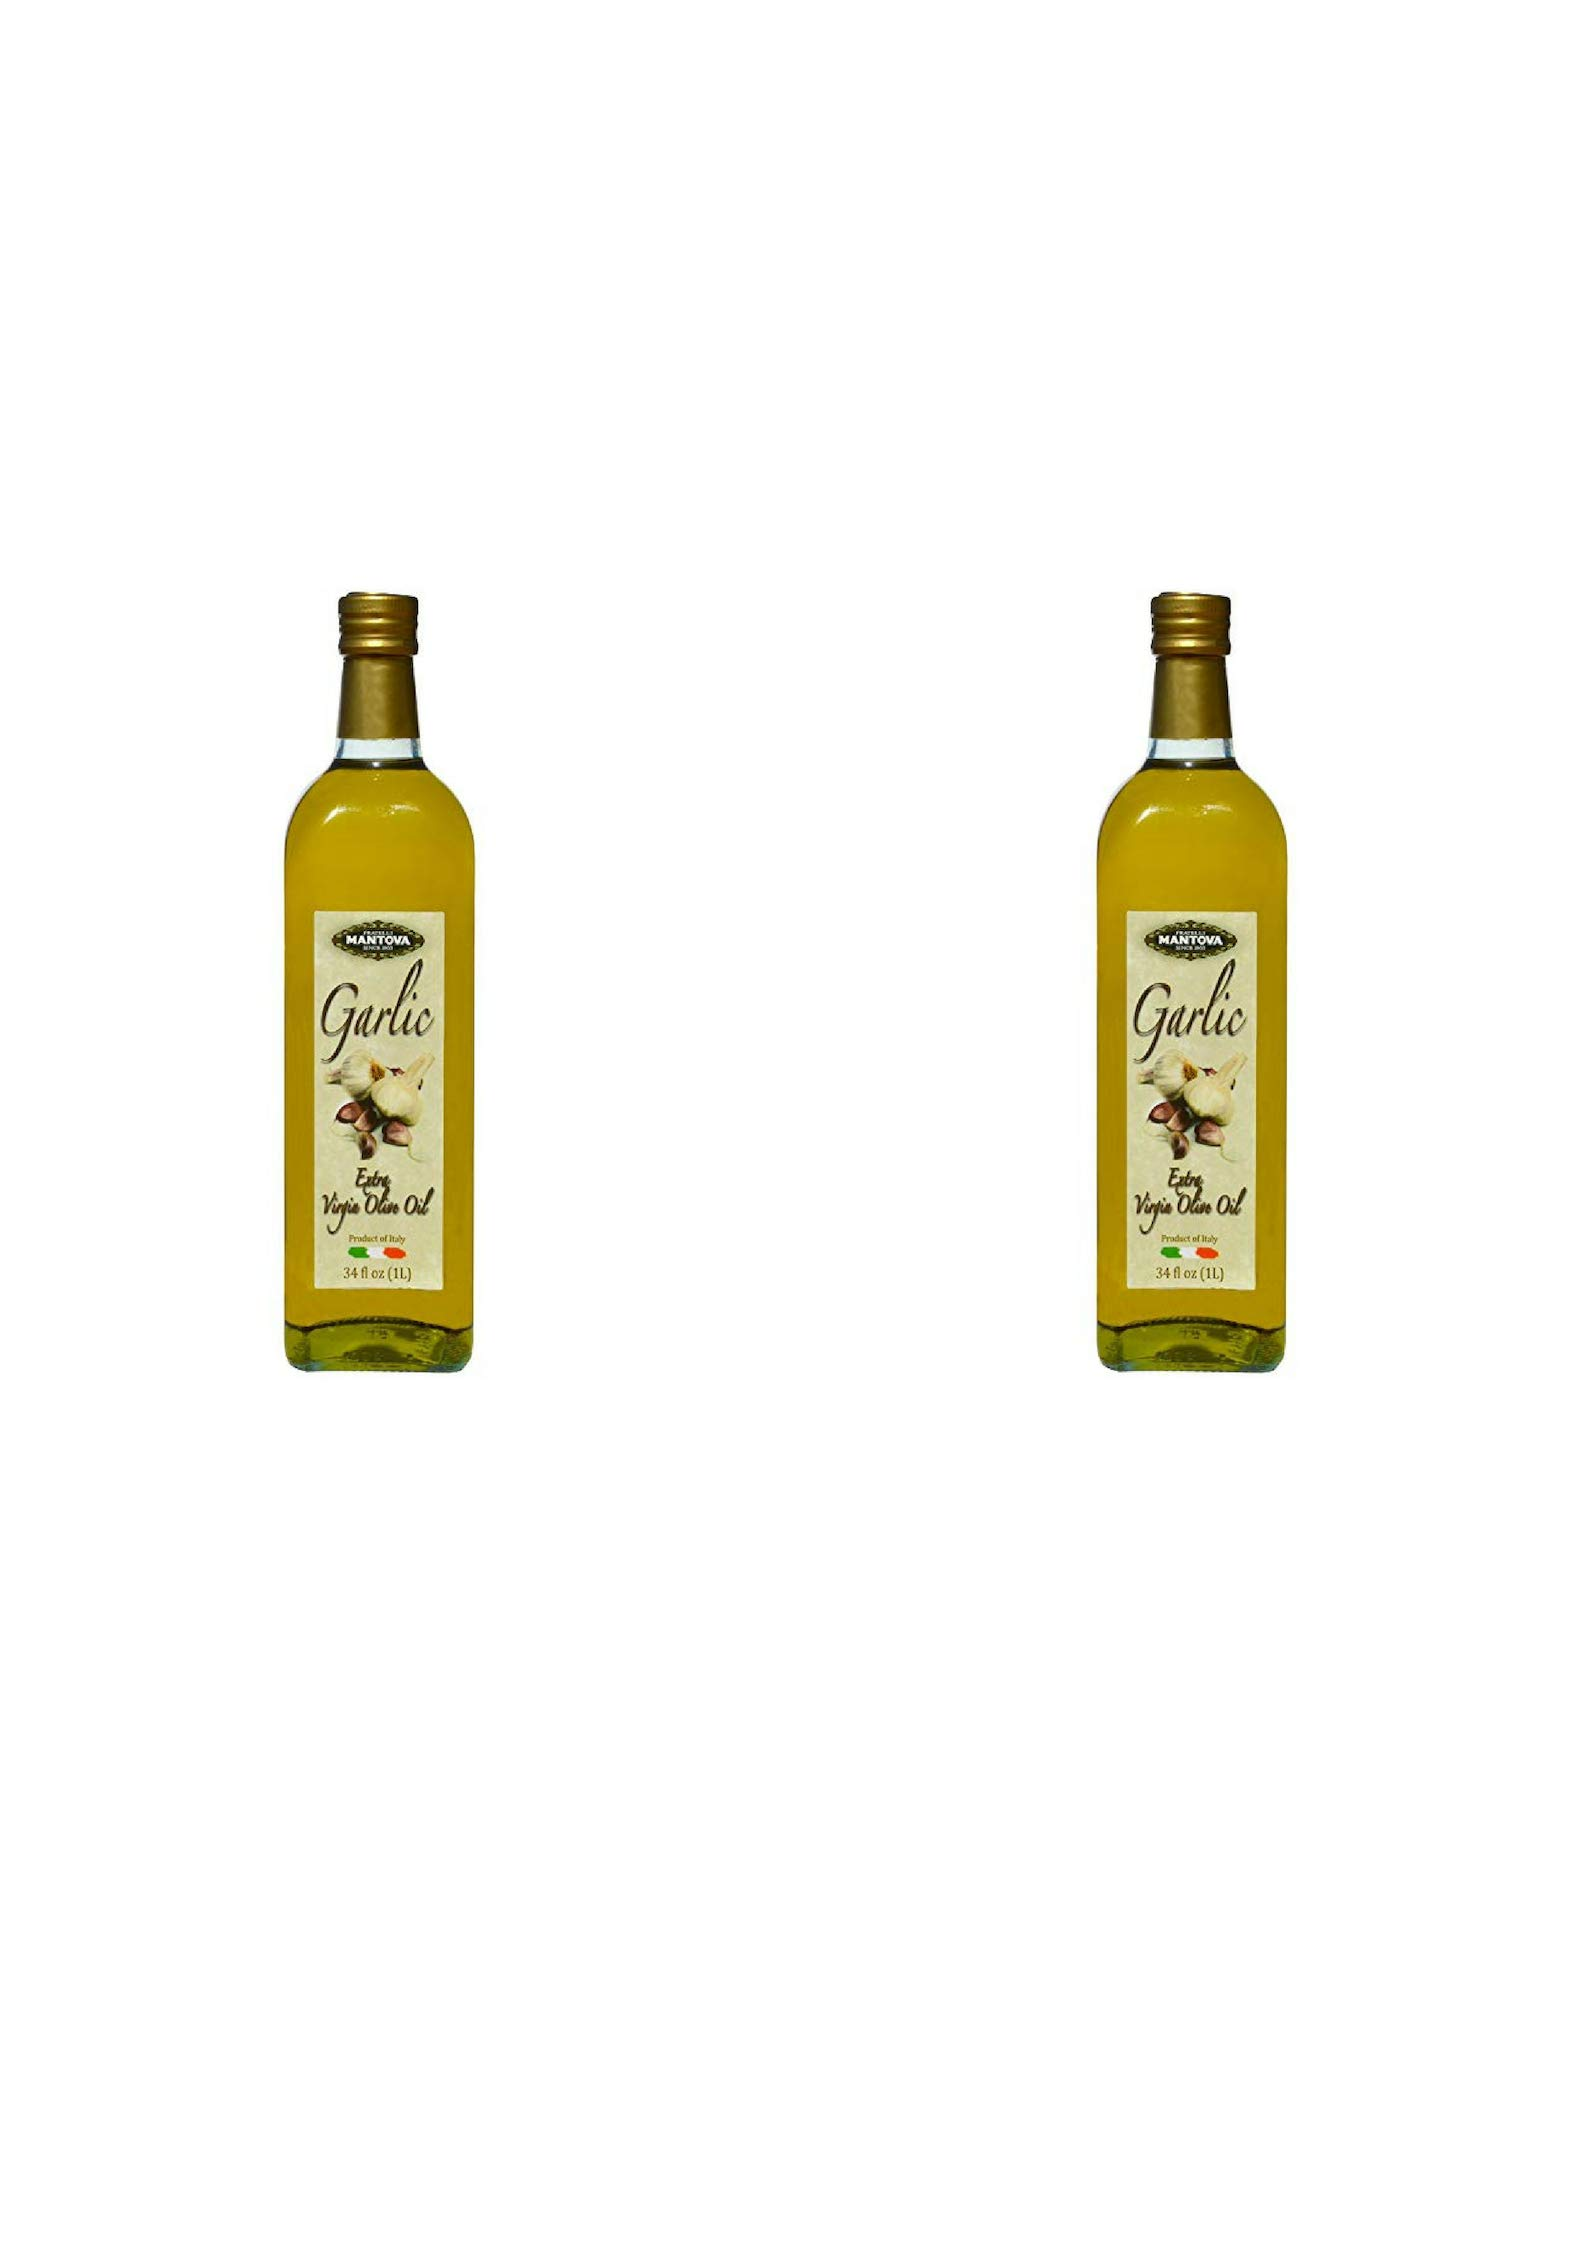 Mantova Garlic Italian Extra Virgin Olive Oil Bottles, 34 oz, 2 Pack (2 Pack) by Mantova